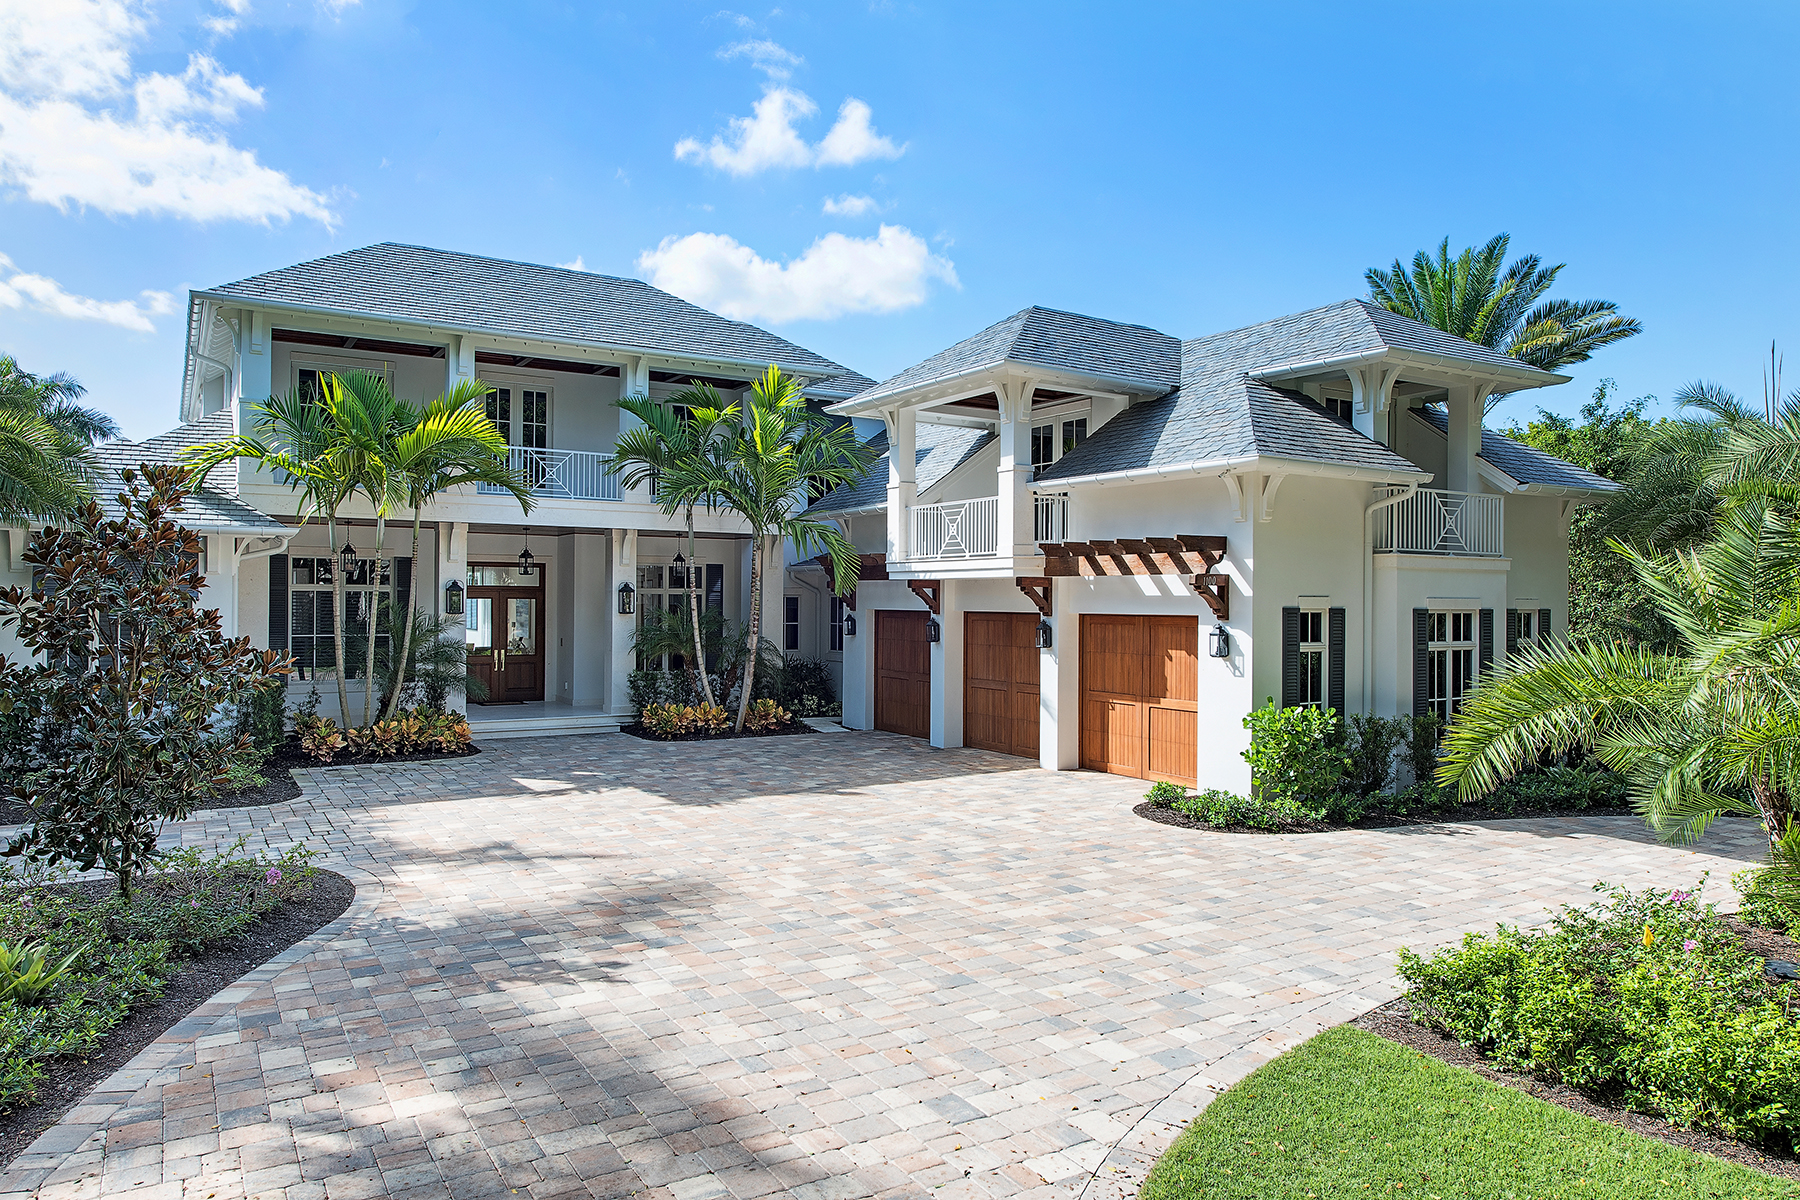 Casa Unifamiliar por un Venta en PORT ROYAL 1100 Galleon Dr Naples, Florida, 34102 Estados Unidos